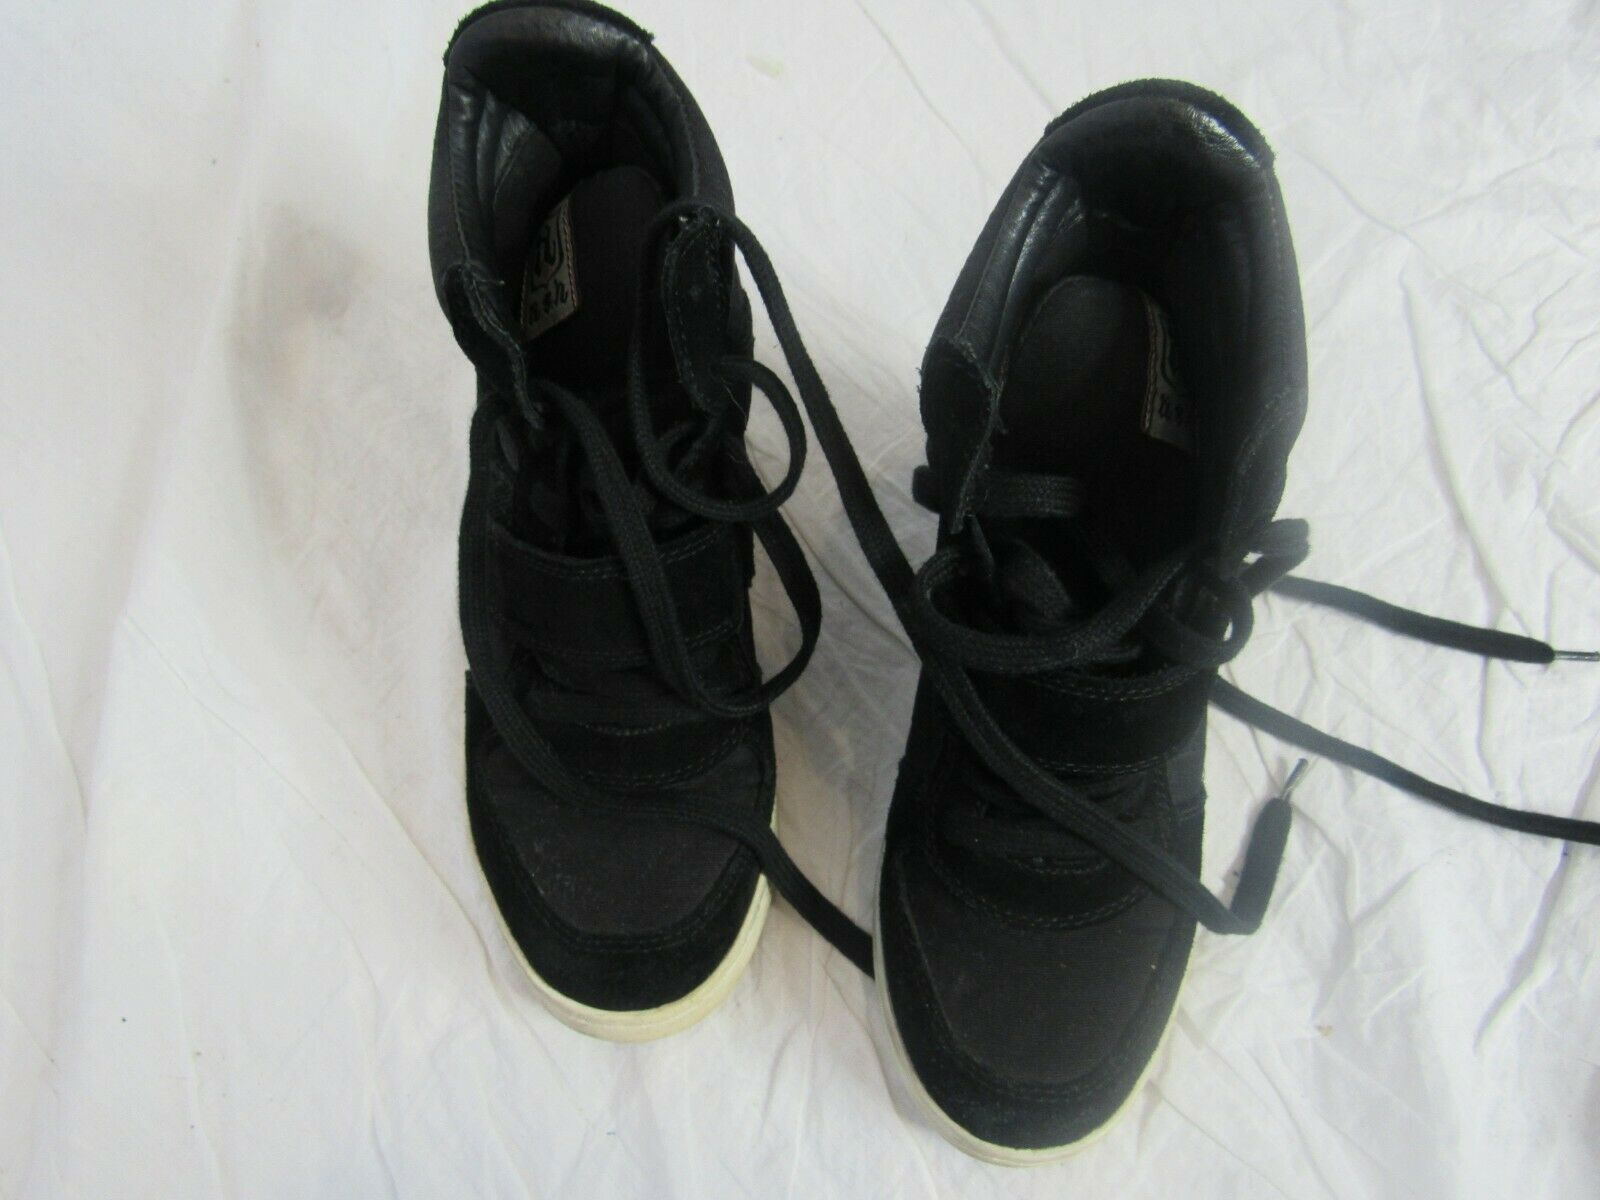 Ash Black Lace Up Wedge Sneakers Size 38